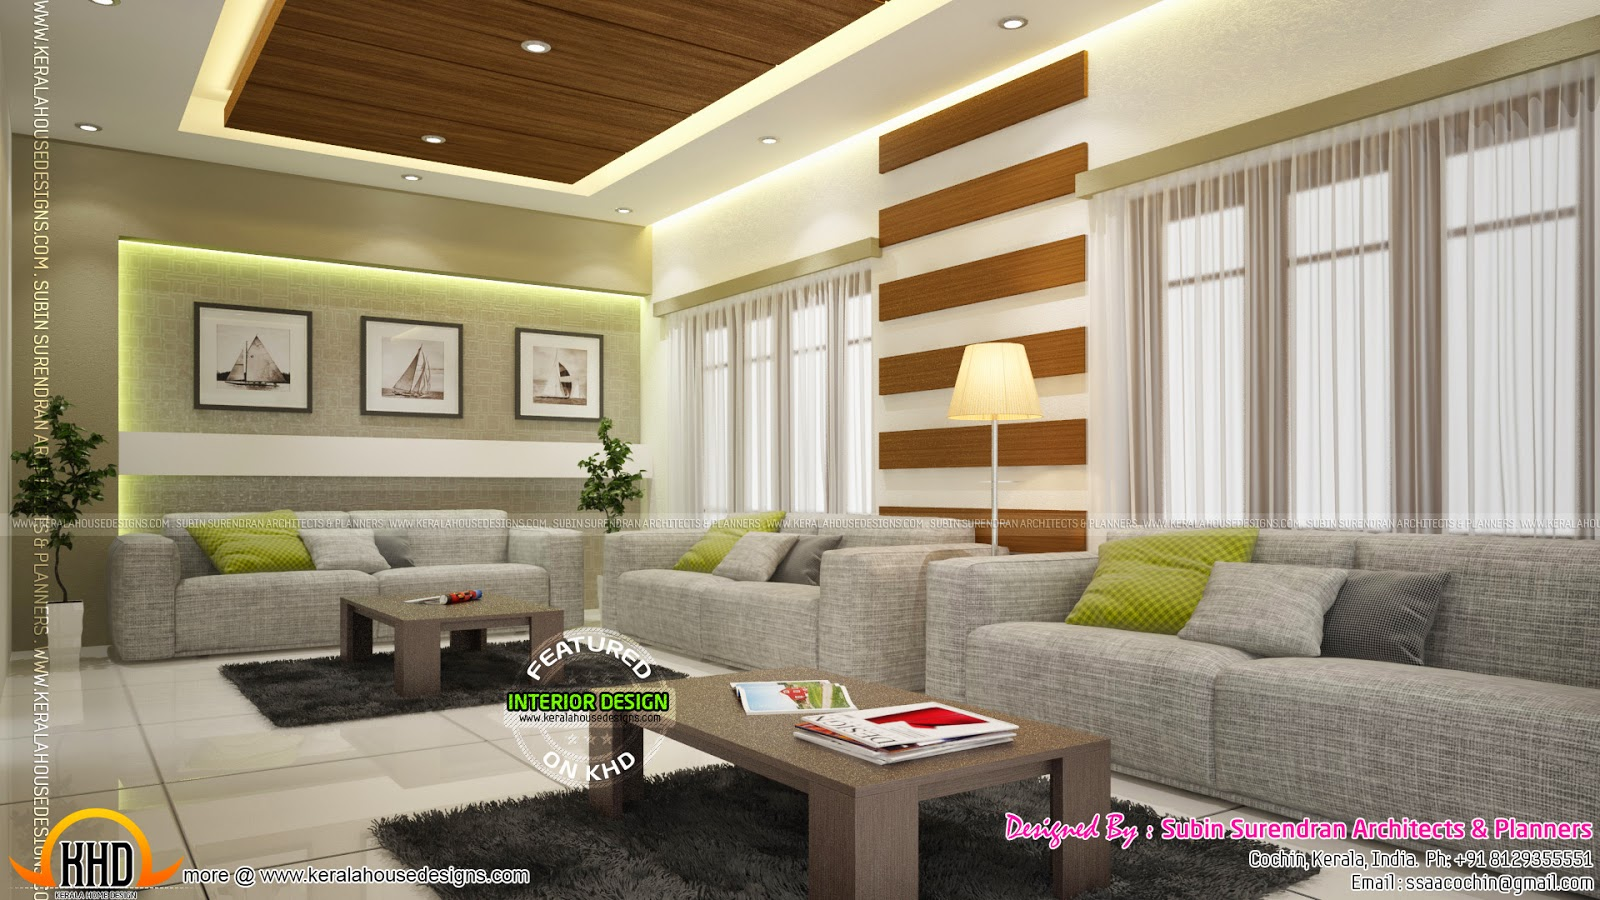 News and article online for House room design